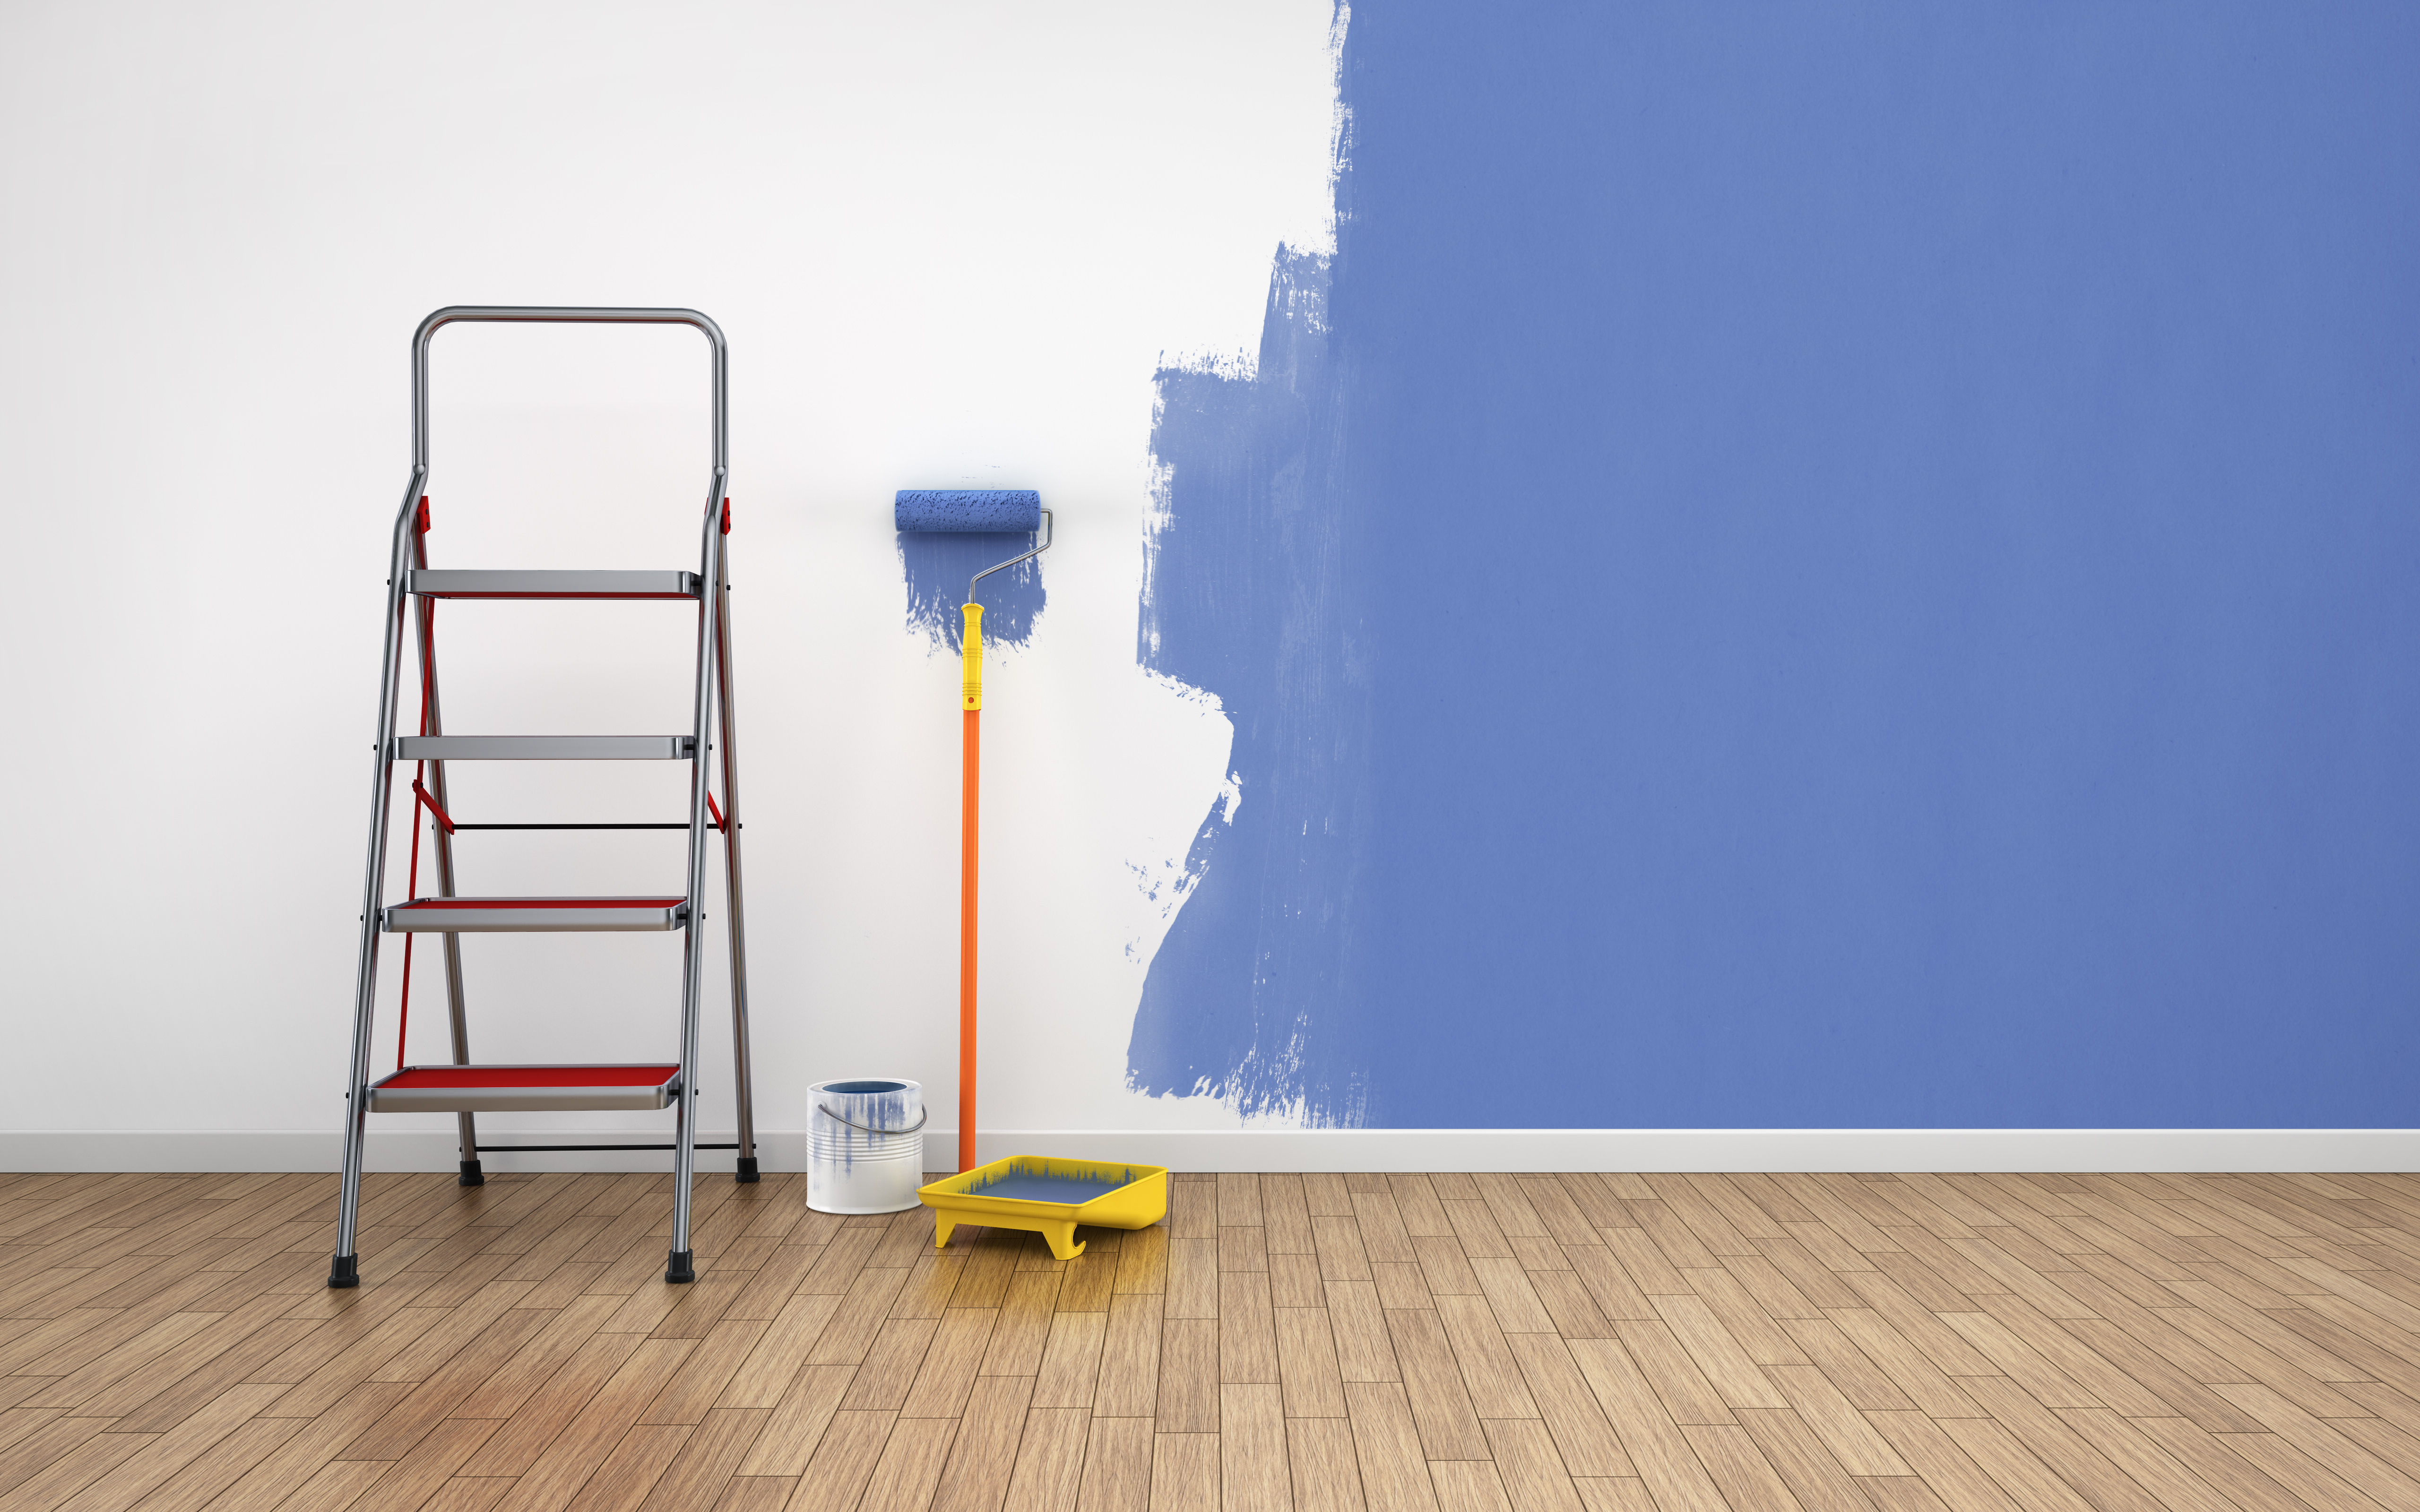 DIY Projects That Can Increase Your Home's Value